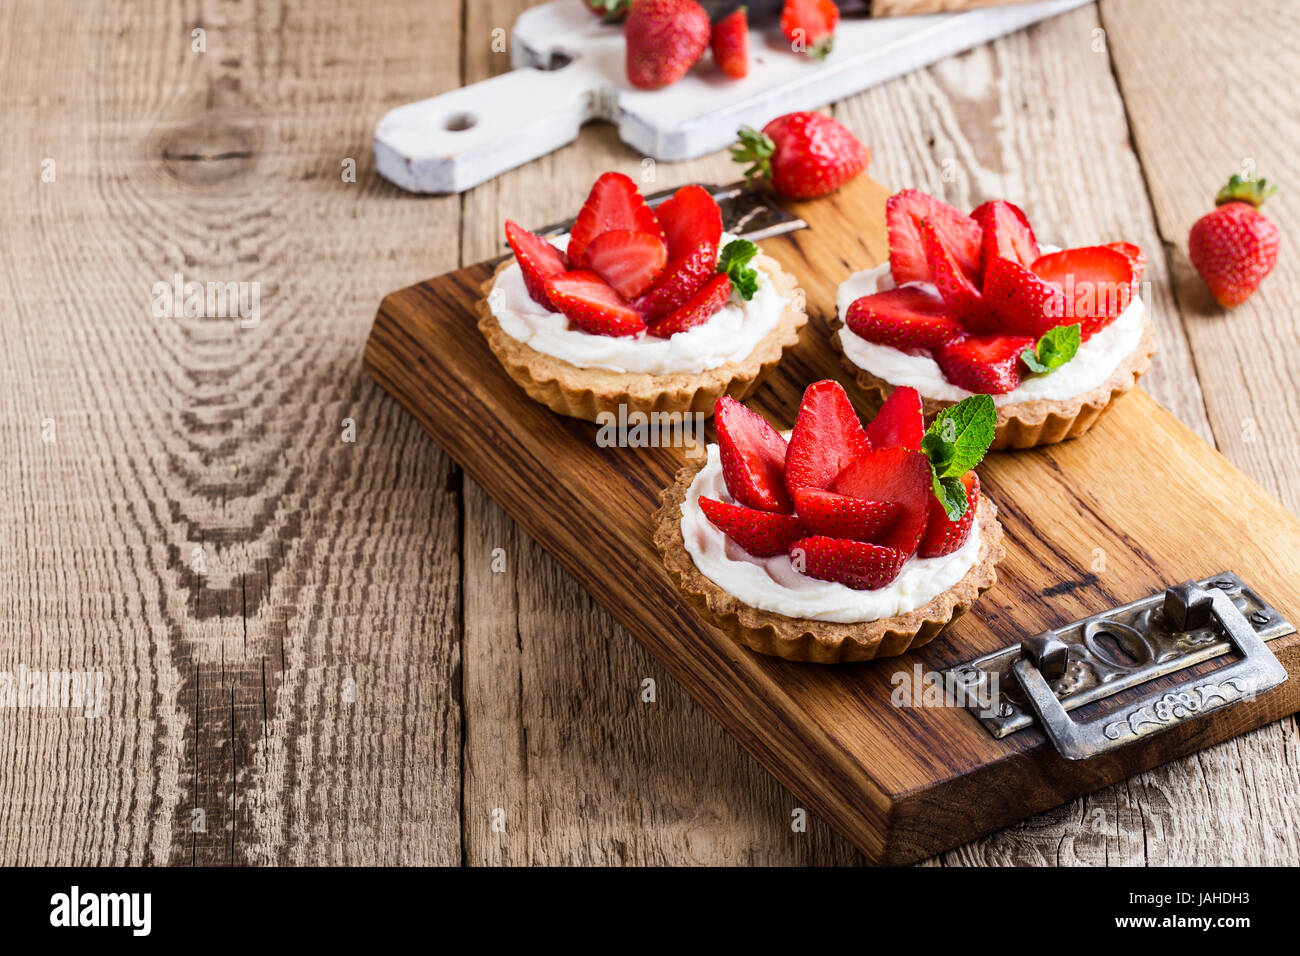 Strawberry shortcake pies on rustic wooden table,  perfect party individual fresh fruit dessert - Stock Image